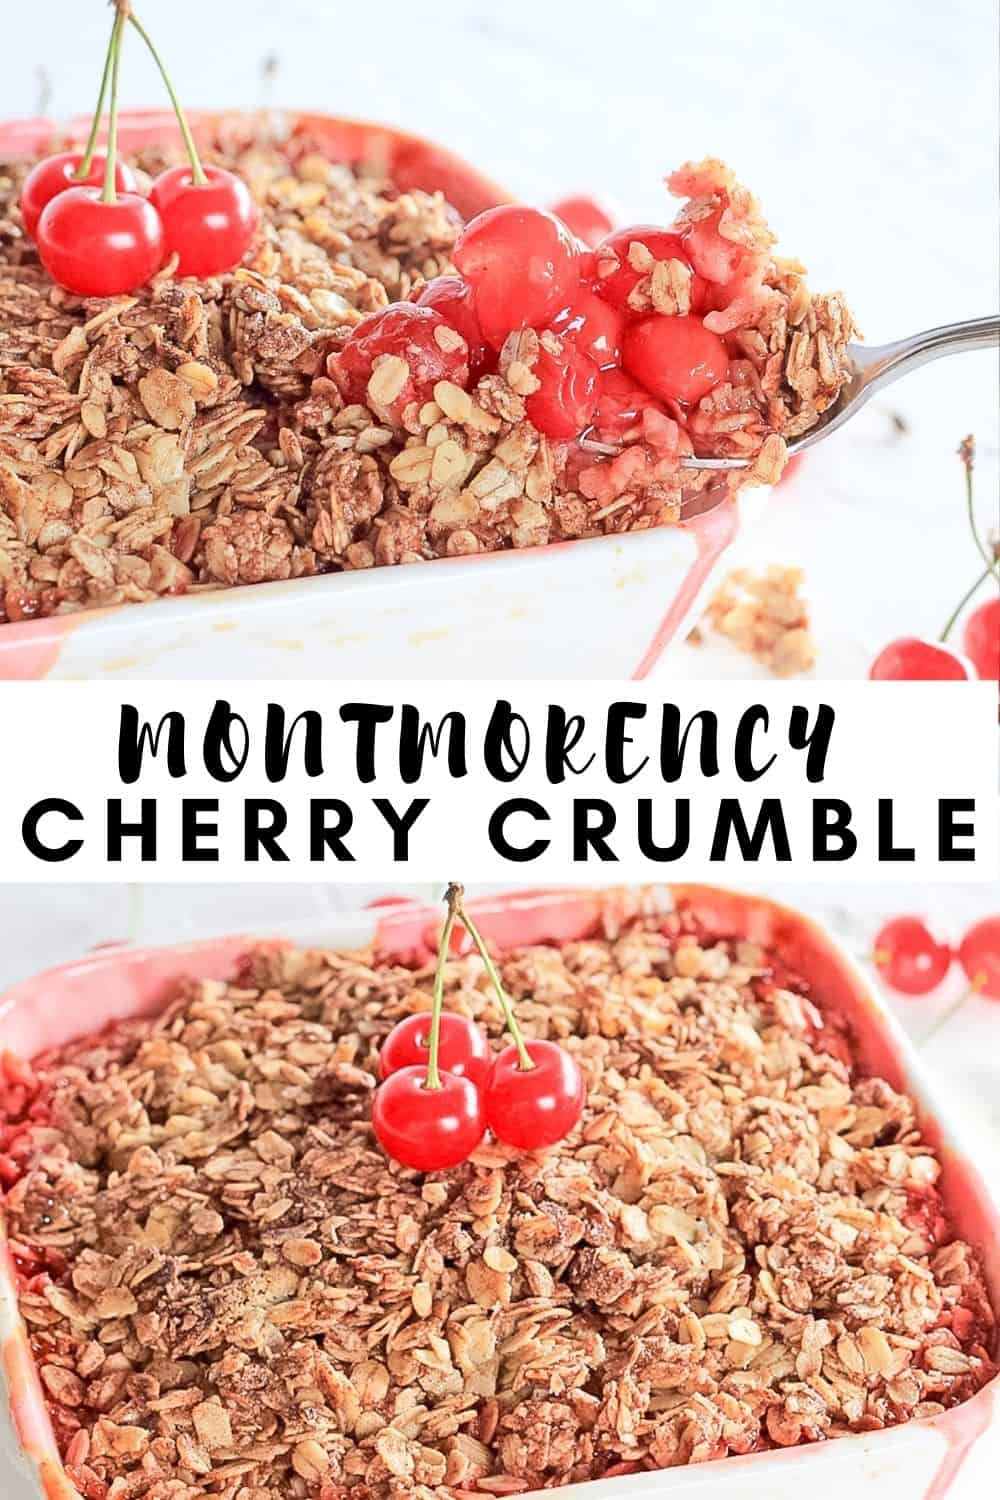 Montmorency Cherry Crumble in a white baking dish.